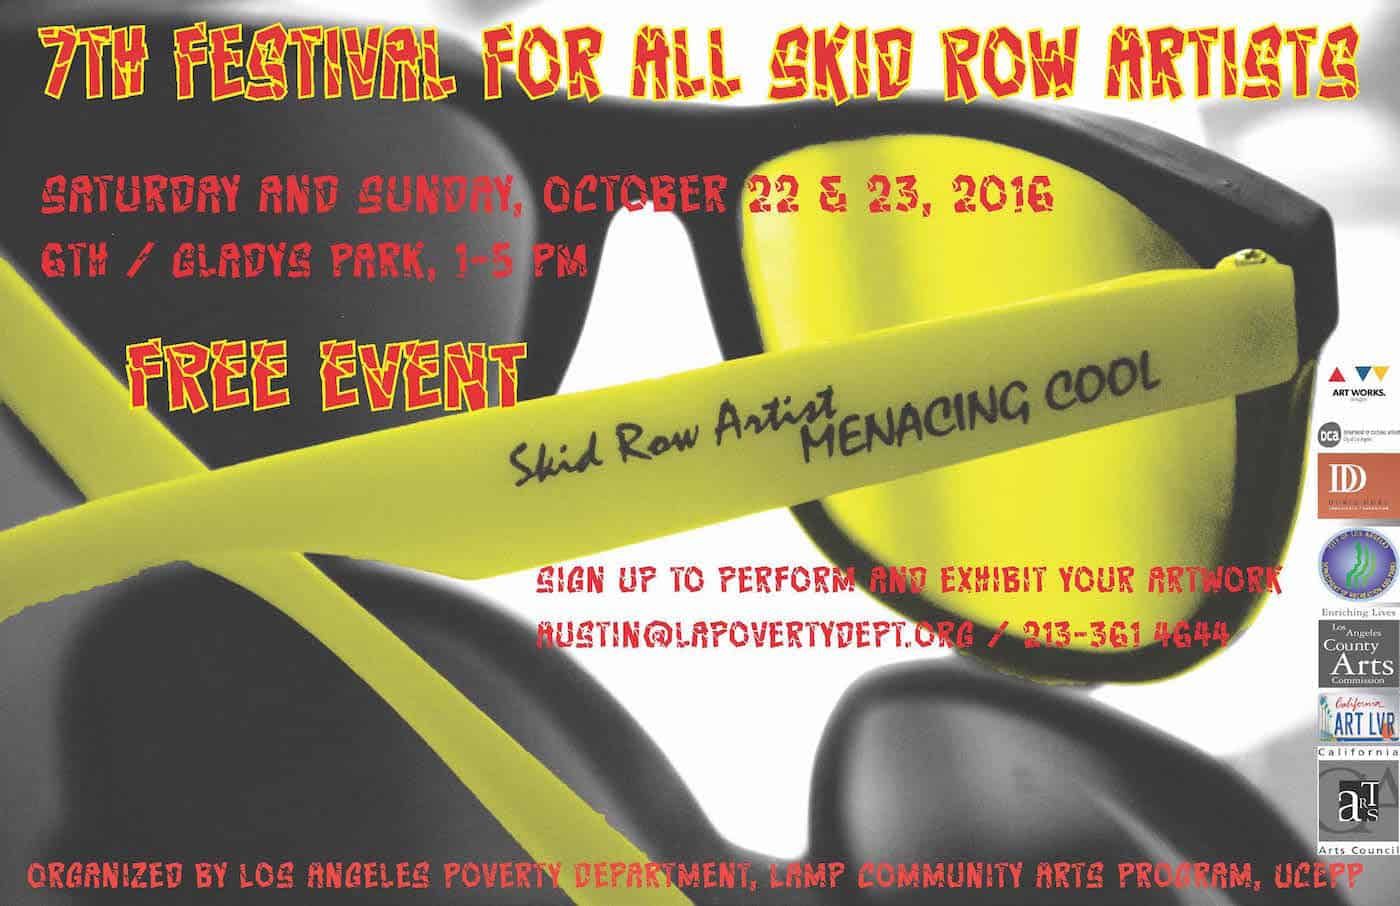 7th Festival For All Skid Row Artists